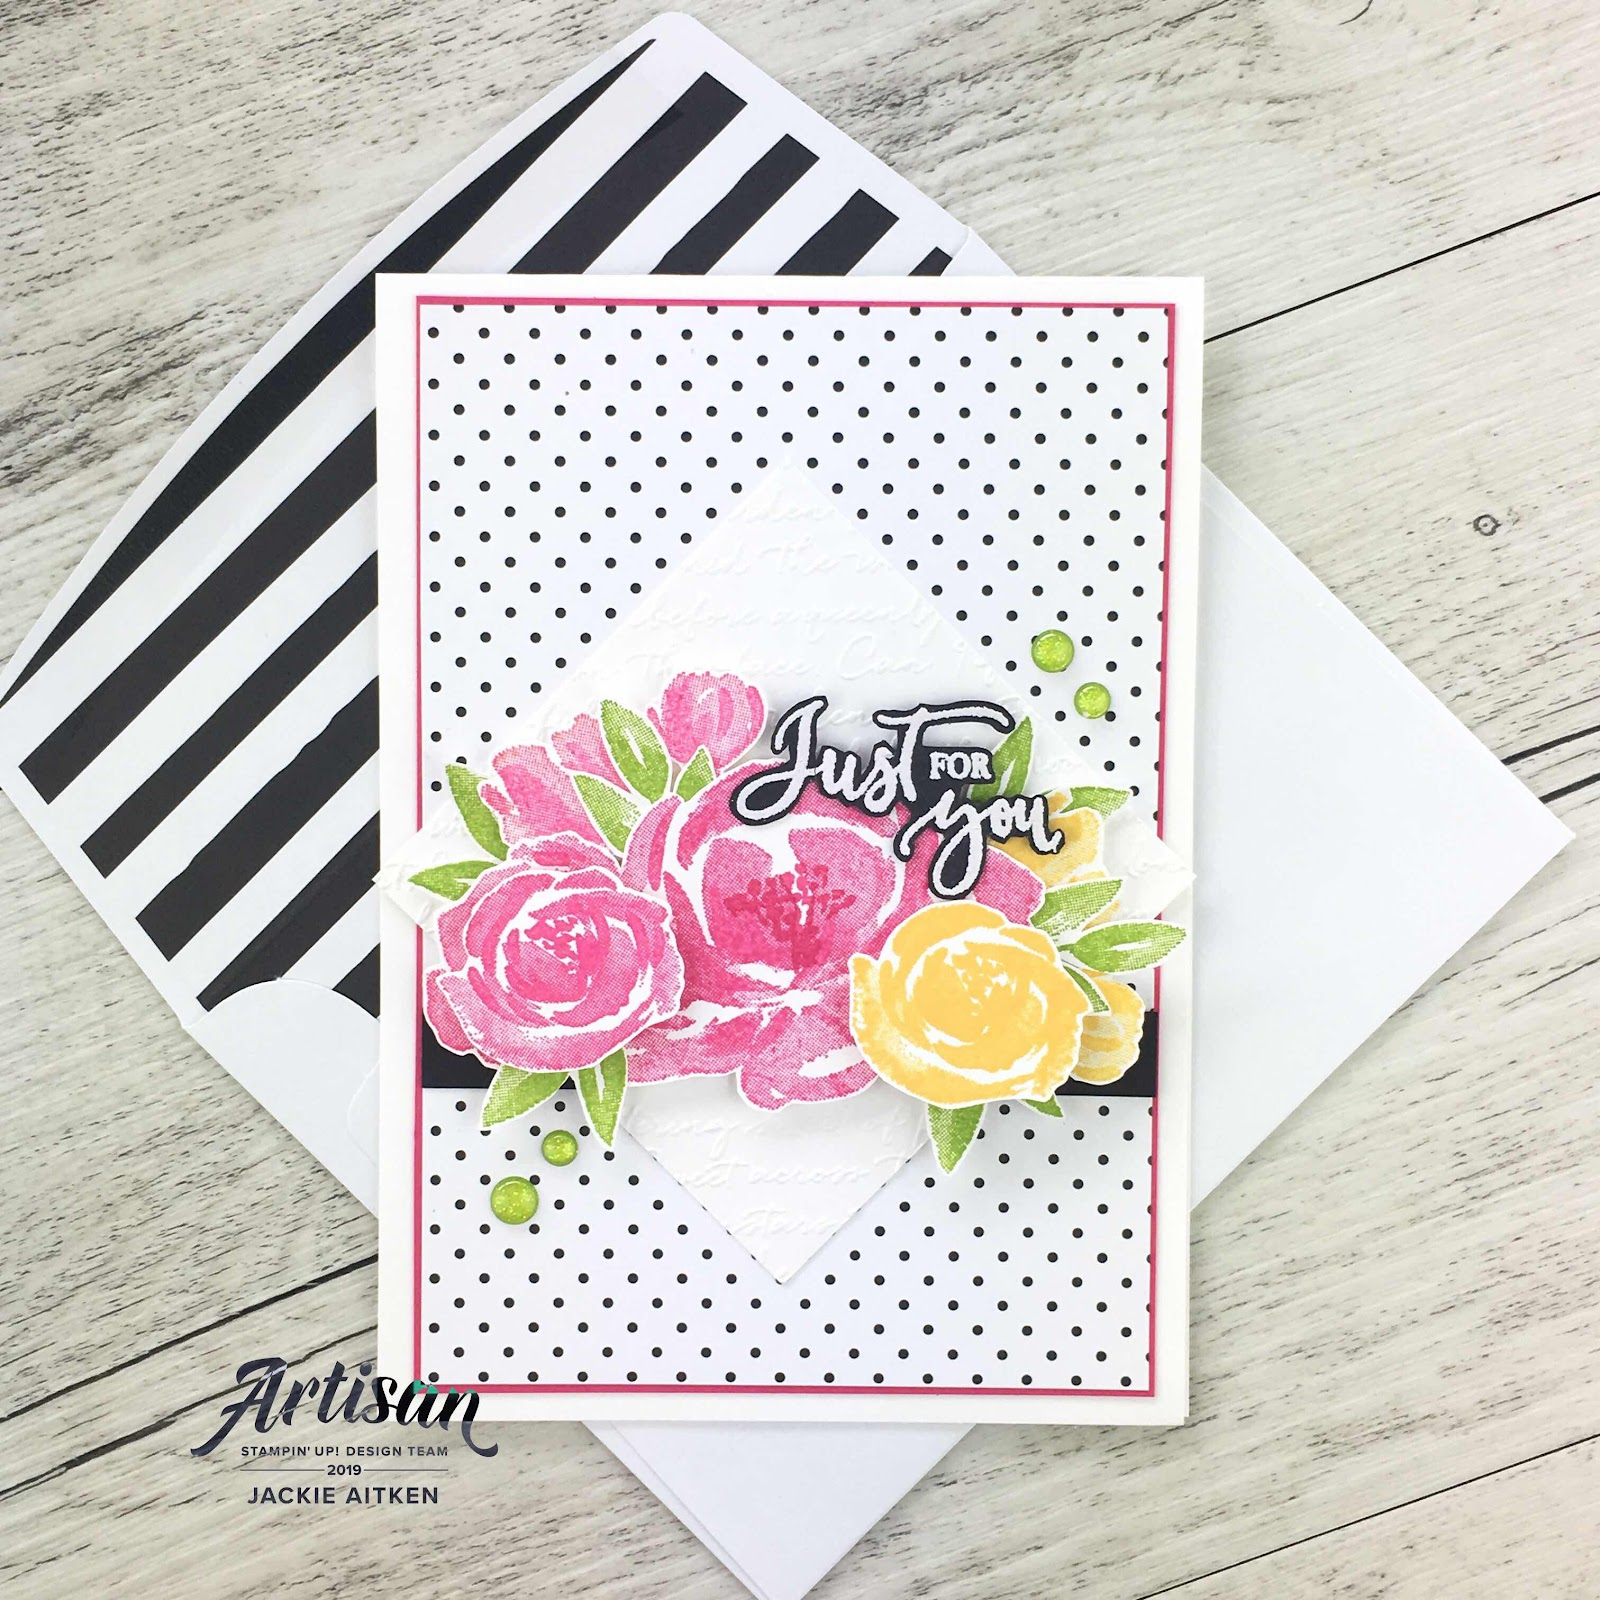 Beautiful Friendship, Rare Blessings, Scripty Embossing Folder, Just Add Ink Challenge, Sketch Challenge, Floral Card, Stampin Up, Jaxx Crafty Creations, Artisan Design Team